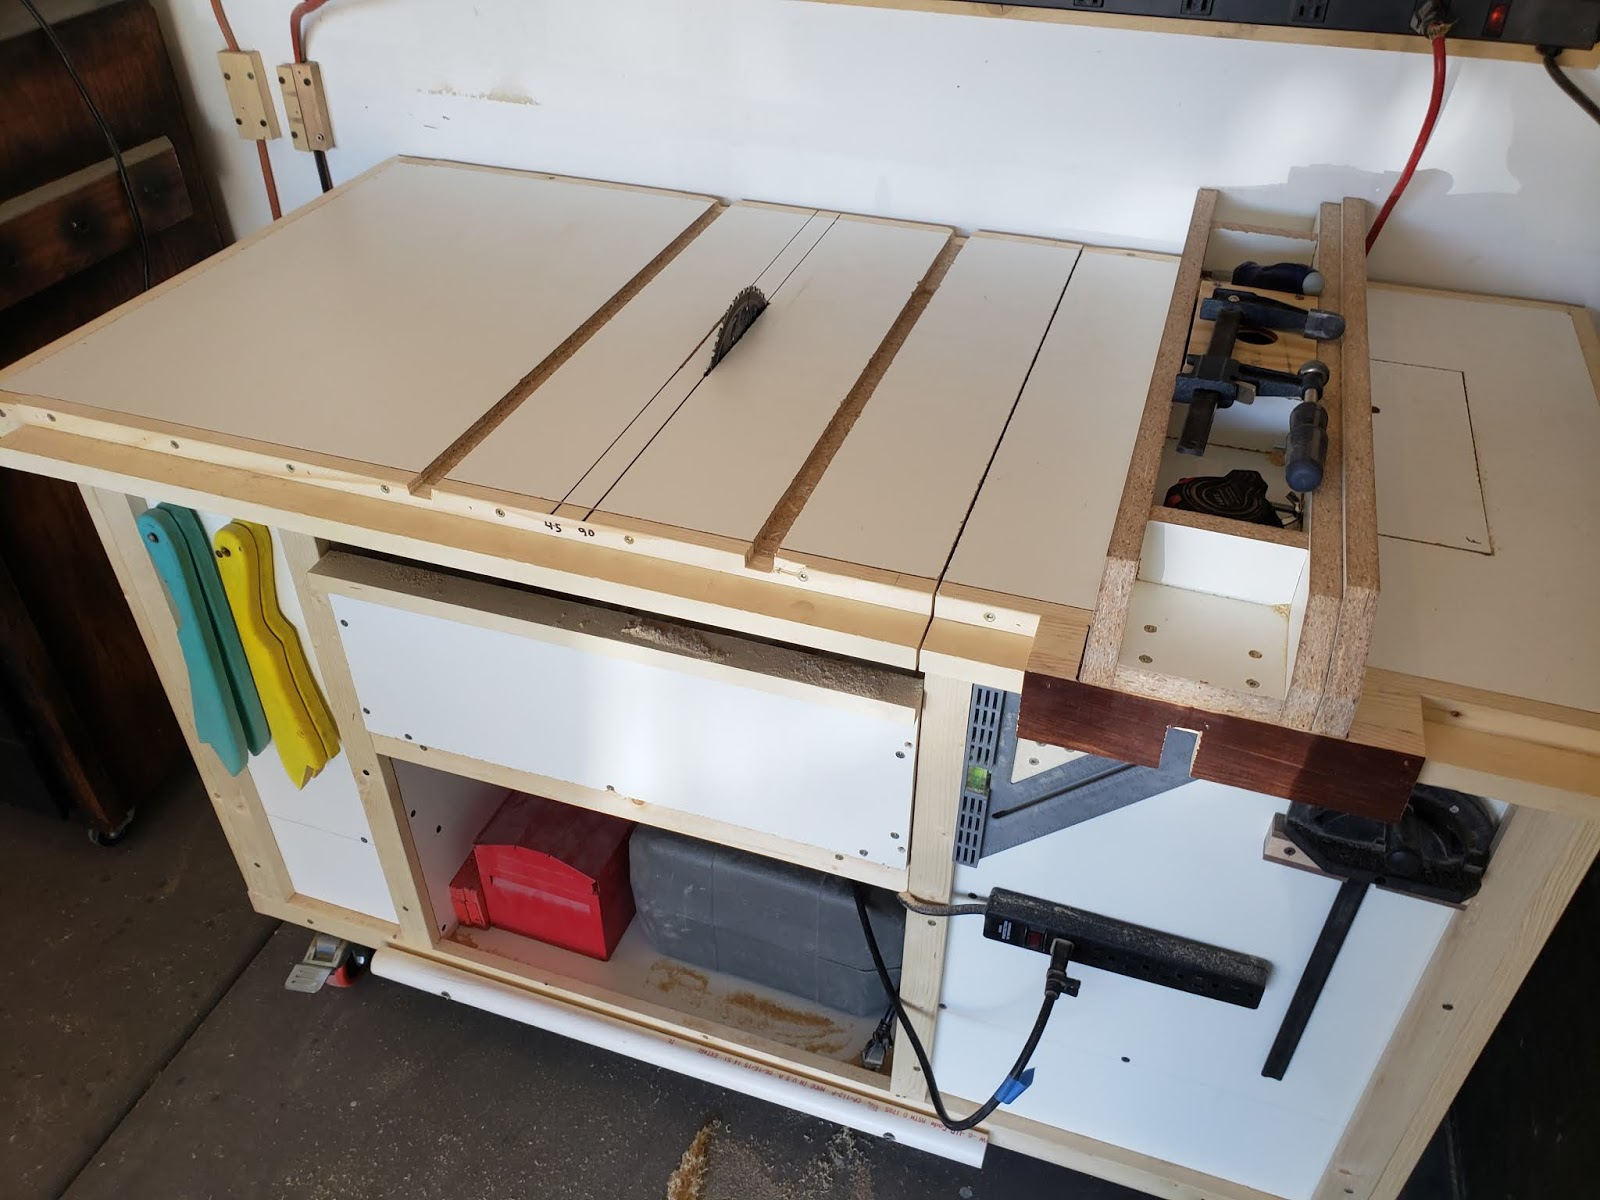 Timbos Creations Drill Press And Sanding Carts Is Preferable To A Hand When